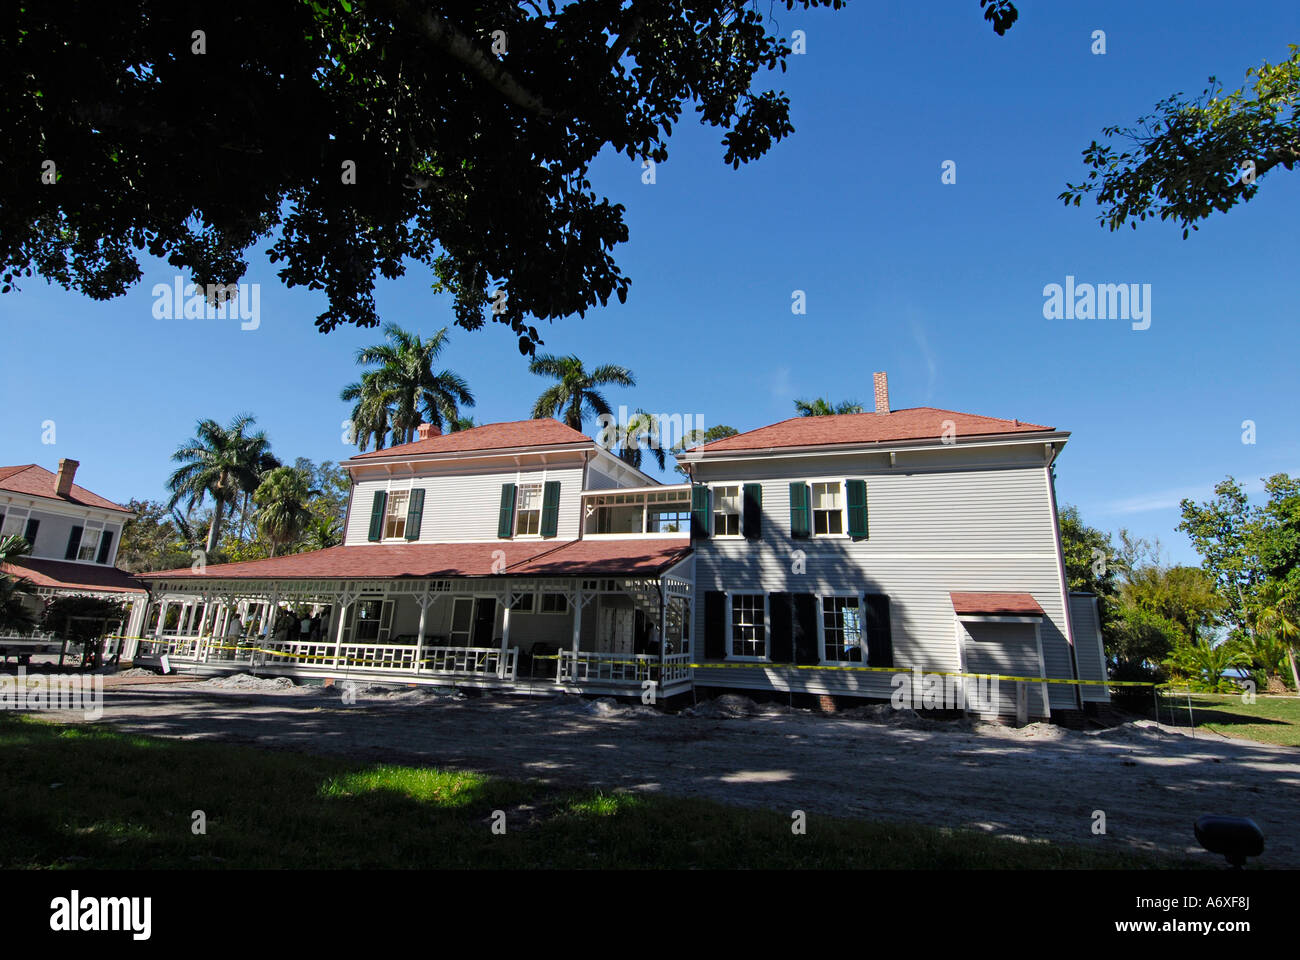 Southwest Ft Fort Meyers Myers Florida FL Edison and Ford Winter Estates Seminole Lodge Stock Photo